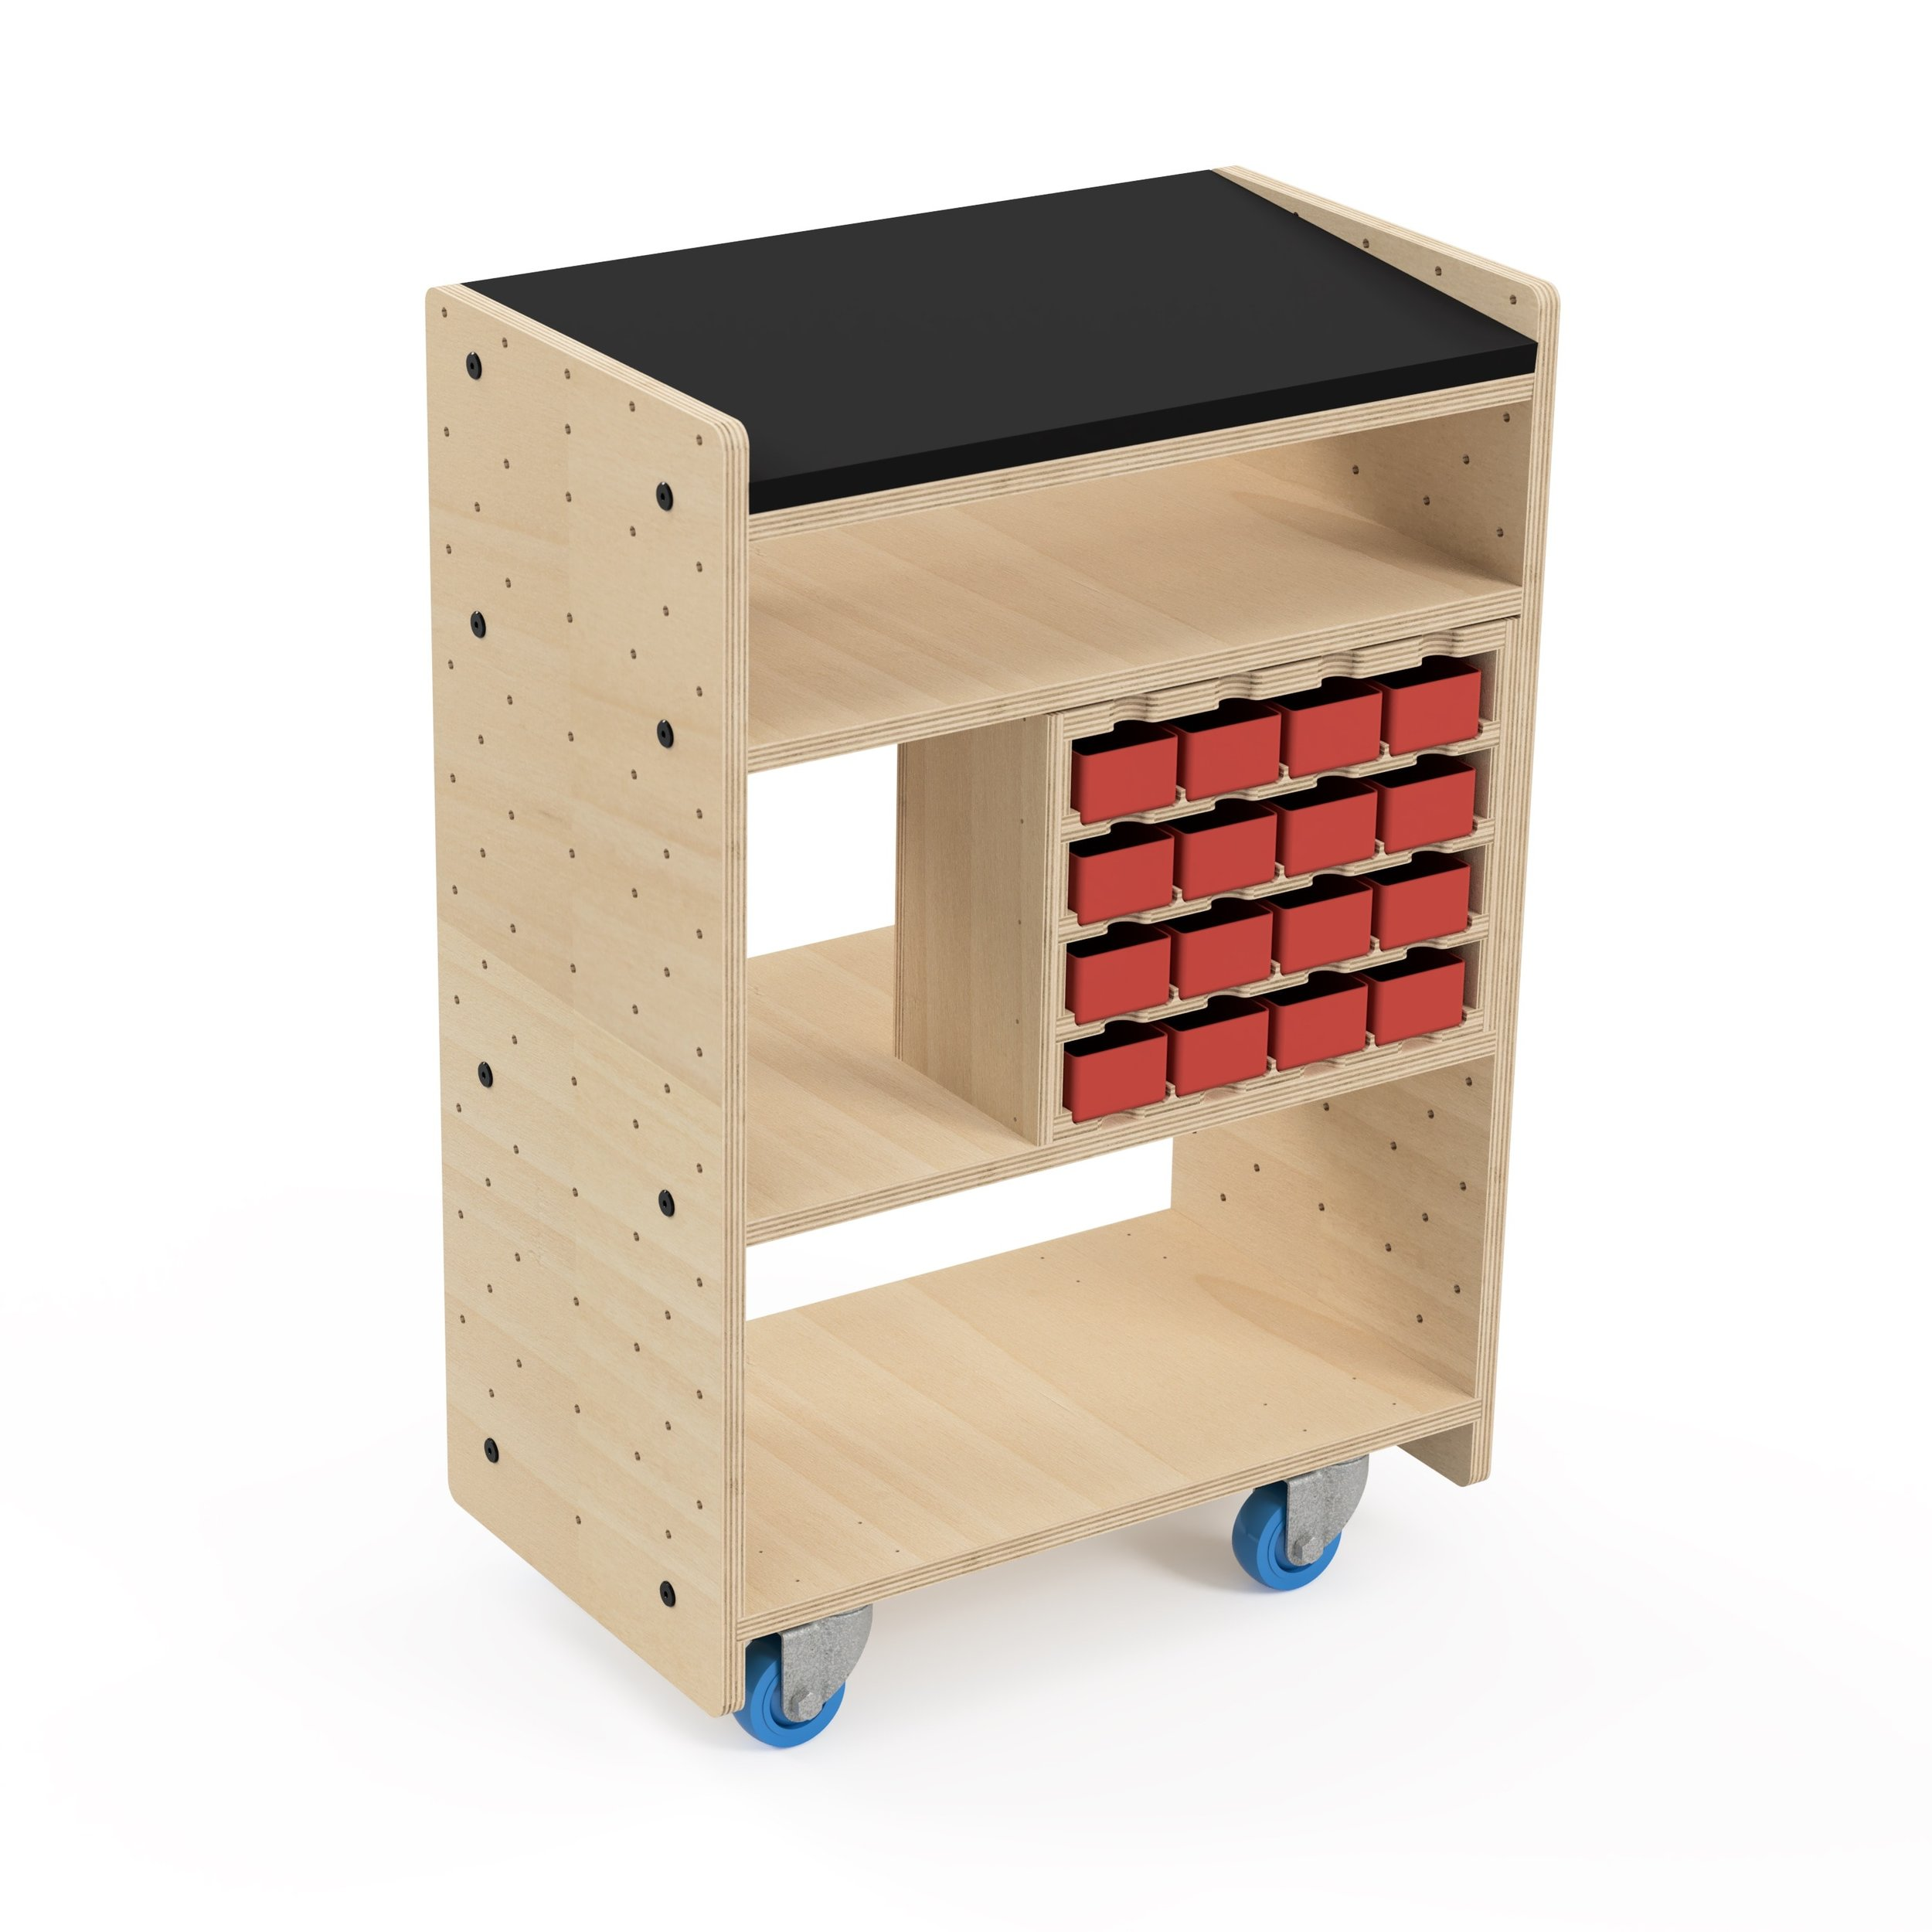 Cart + Caddy - Includes• Everything in CNC Cart above, plus:• Hardware Caddy• Hardware Bins (16)